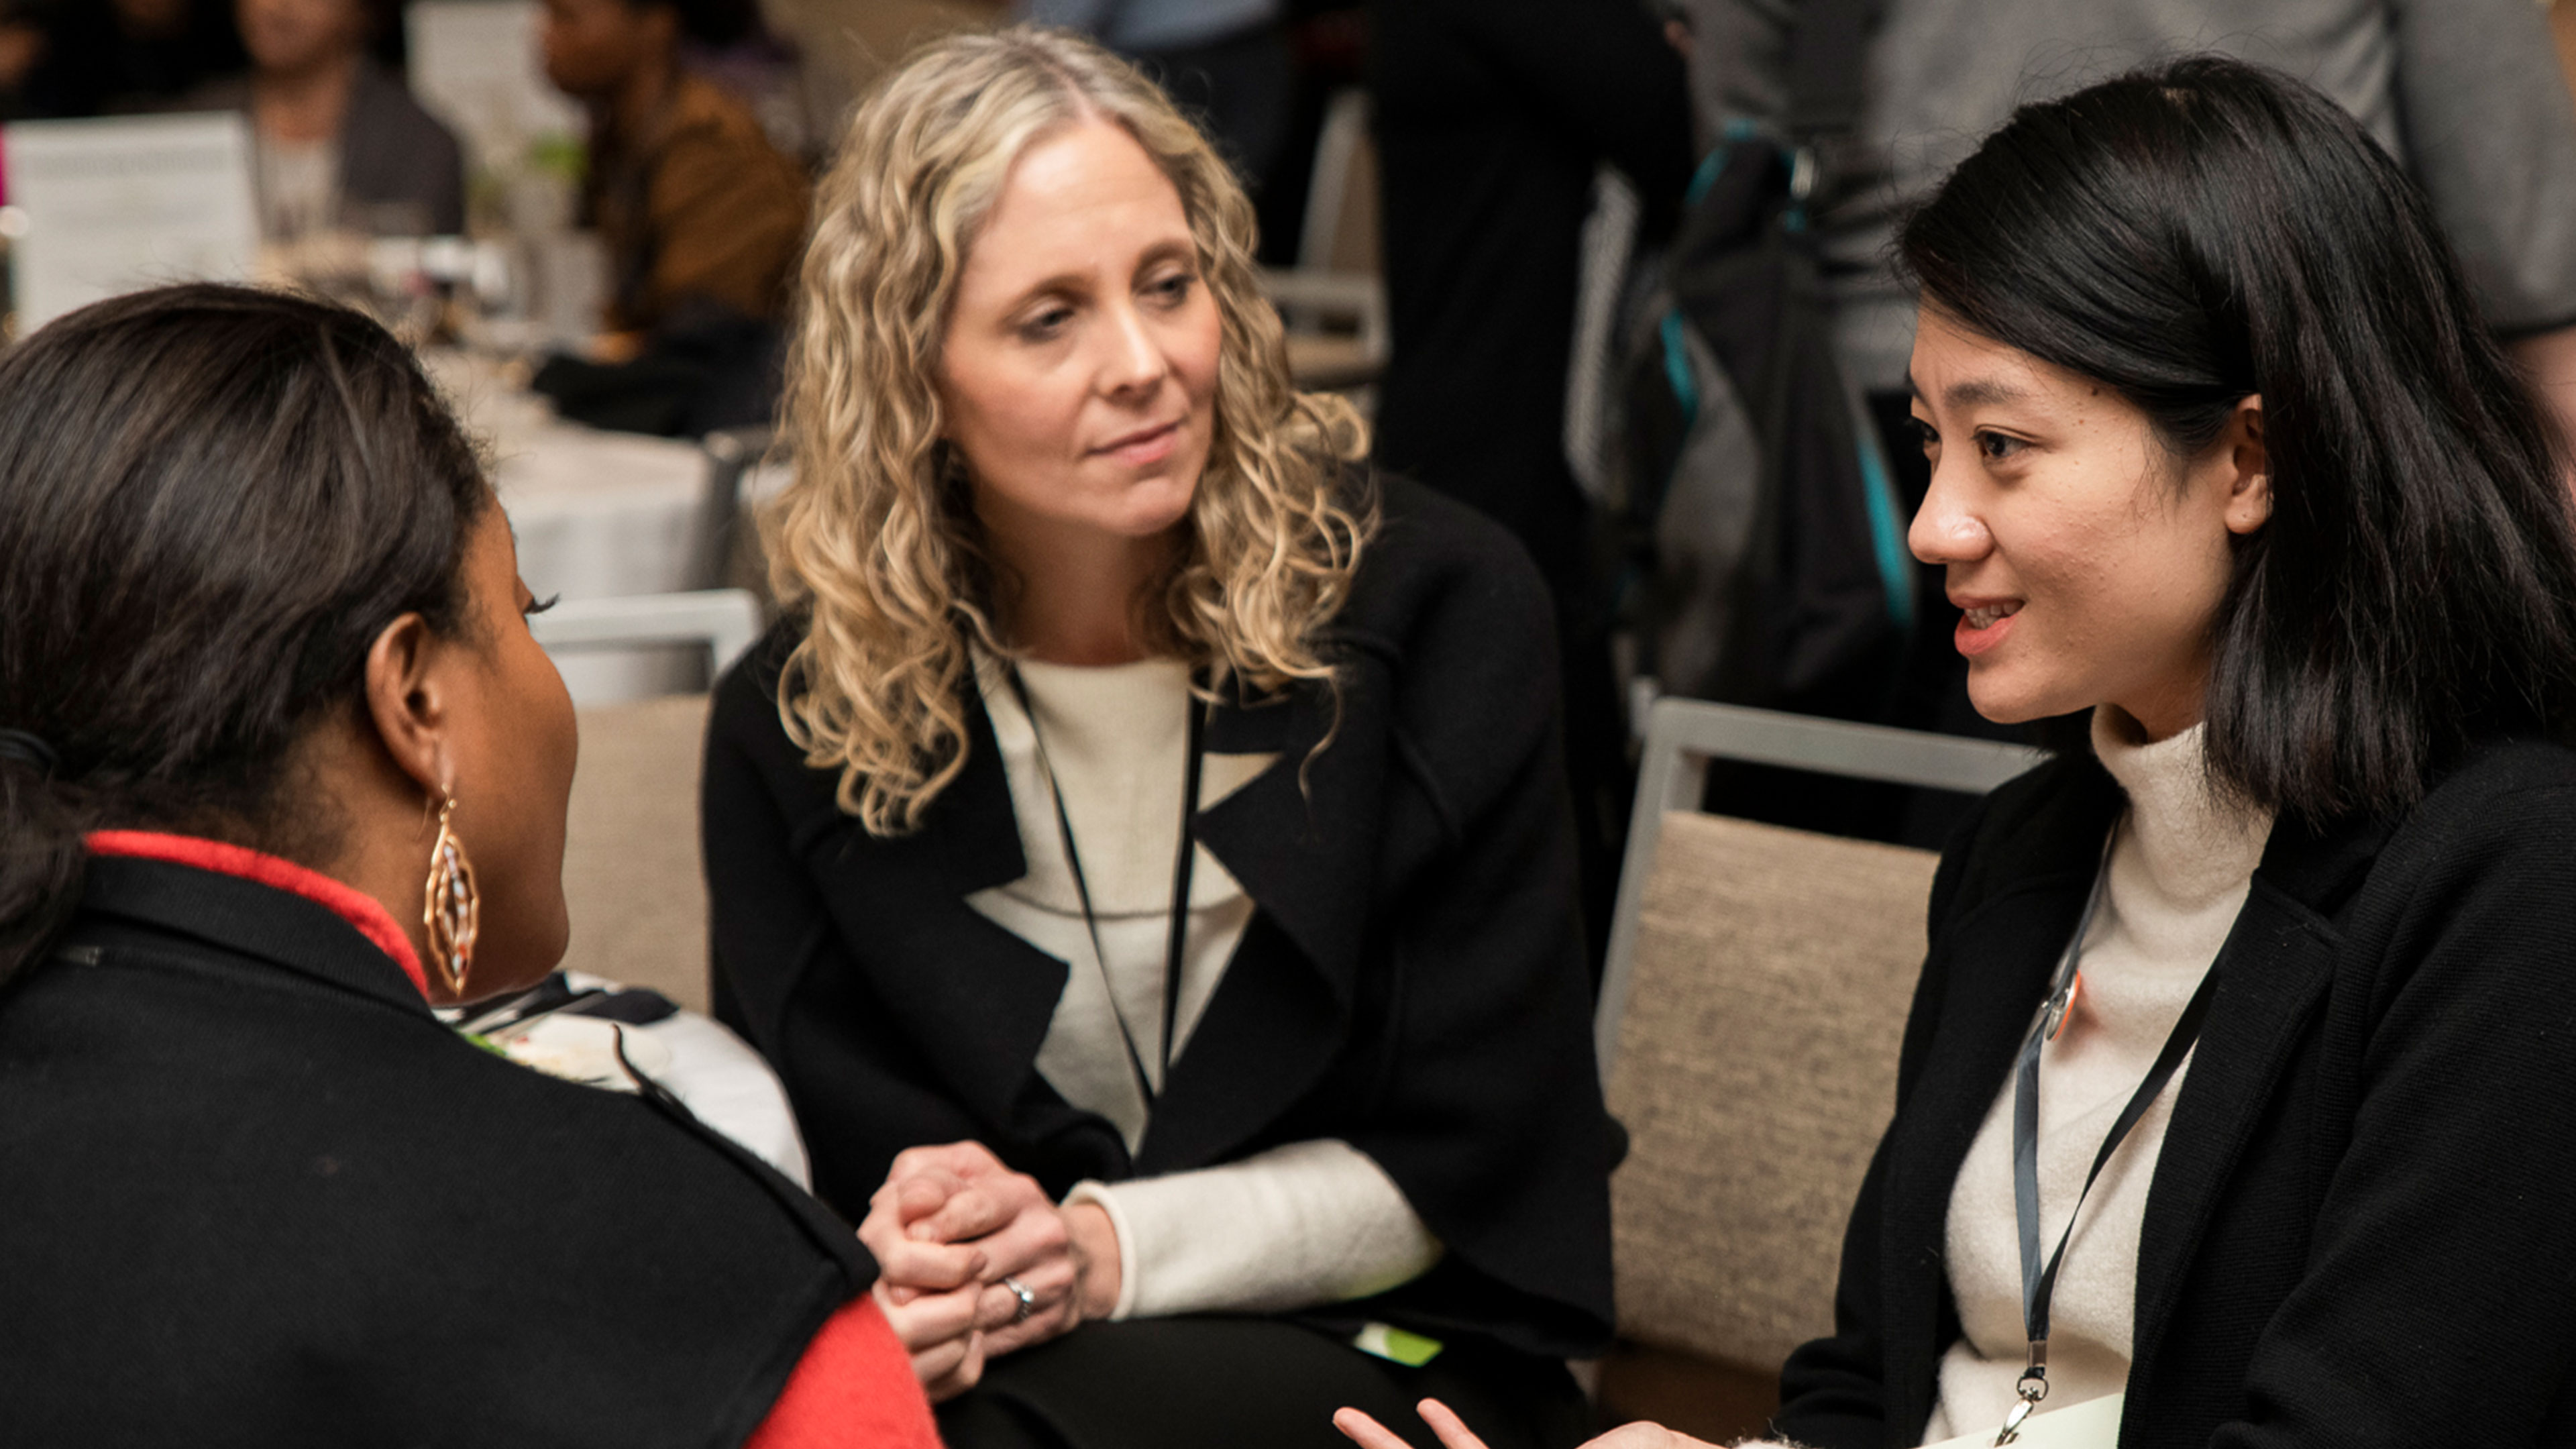 Picture of three women in conversation